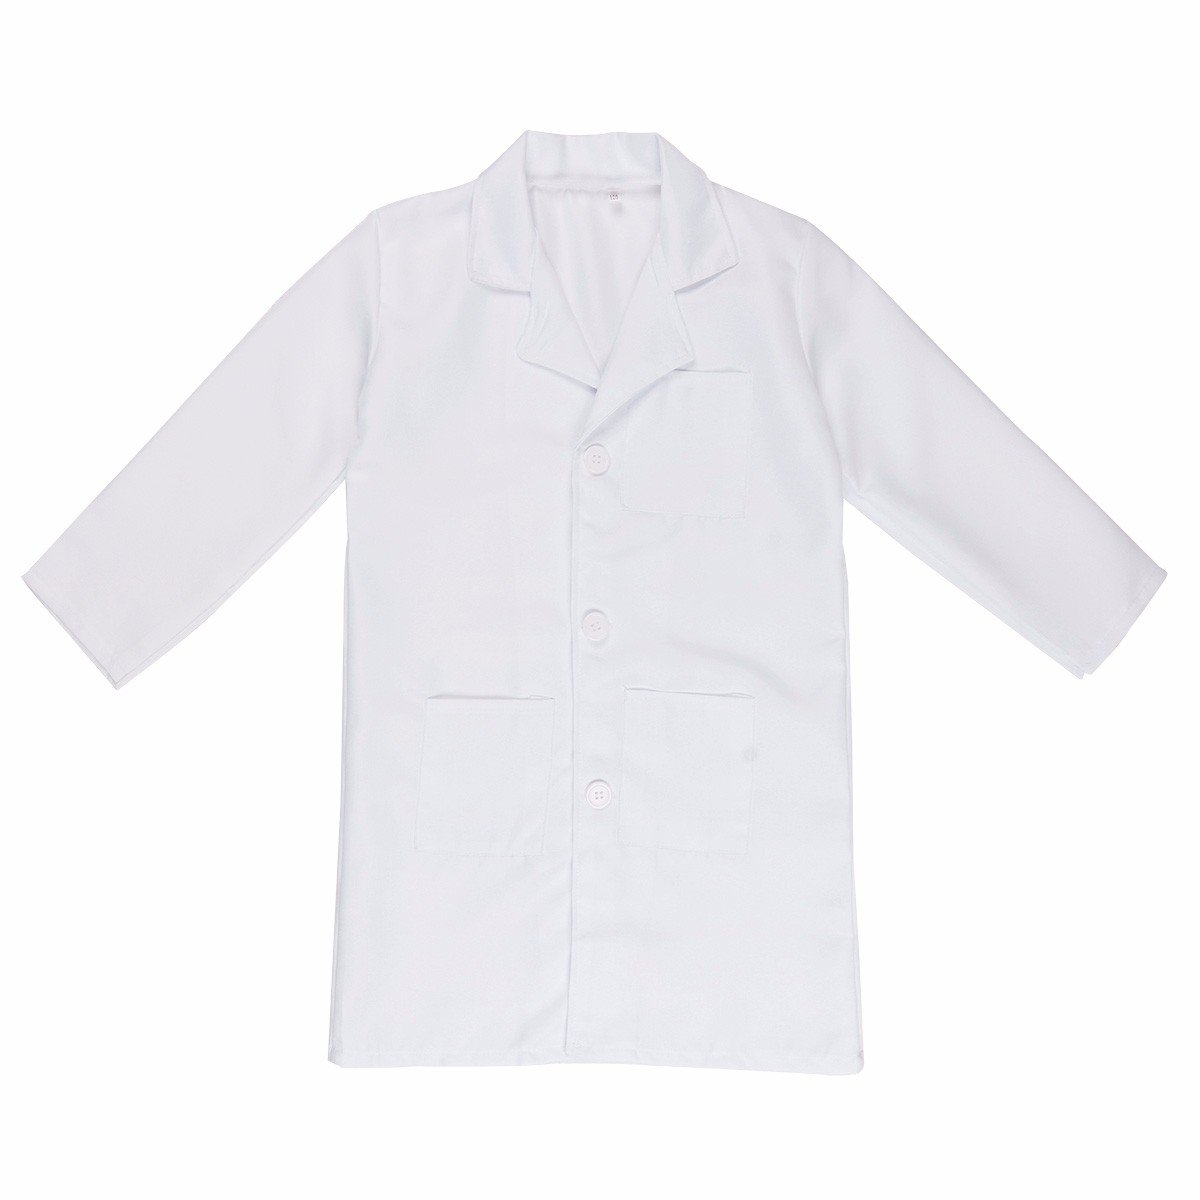 iEFiEL Unisex Kid's Lab Coat Long Sleeves Doctor Cosplay Fancy Dress Party Costume White 10-12